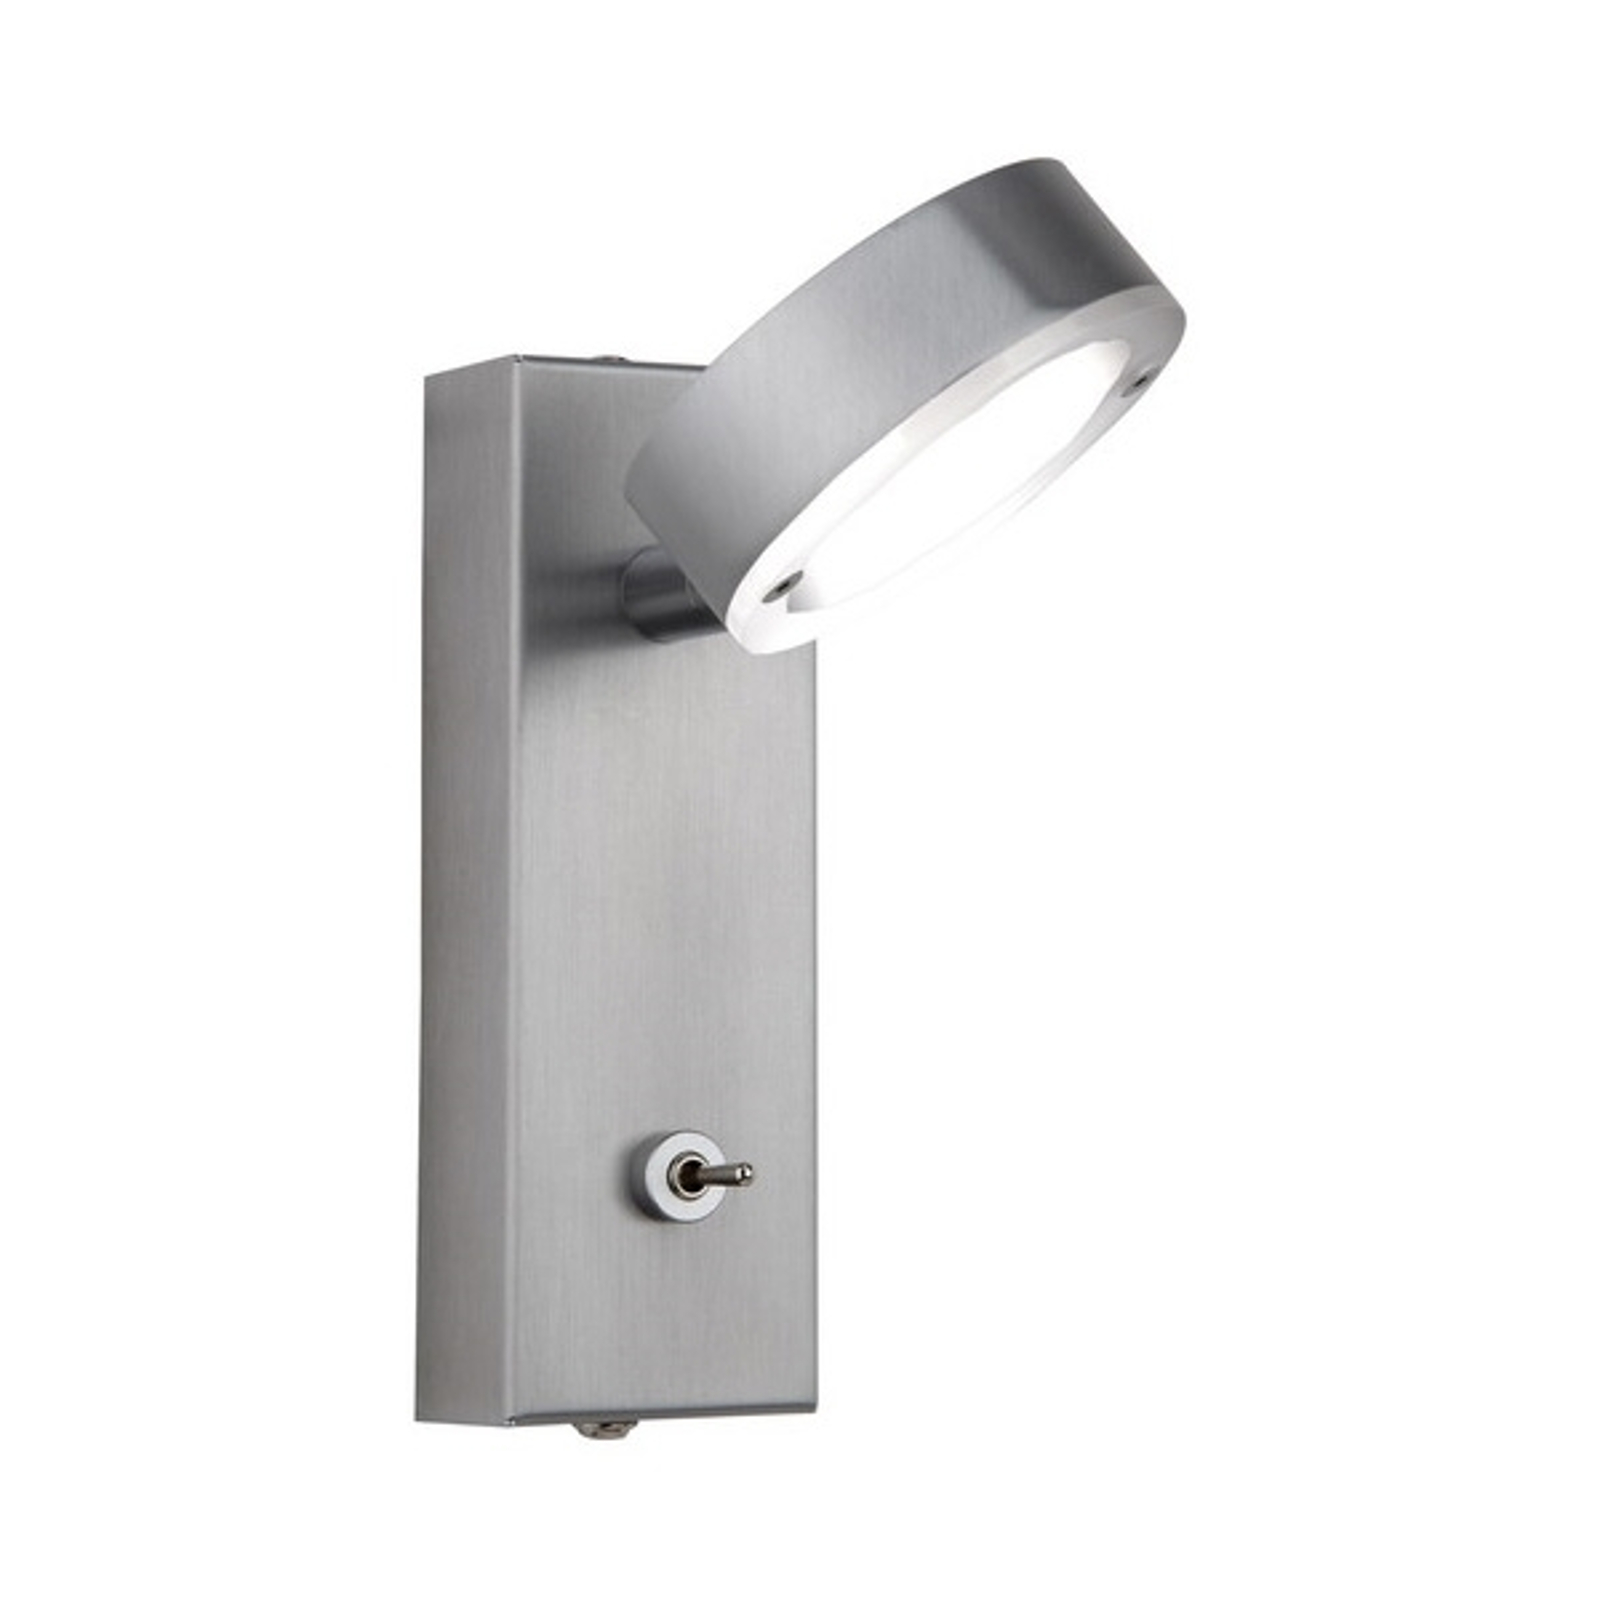 High-quality LED wall light Saturna with switch_1524108_1